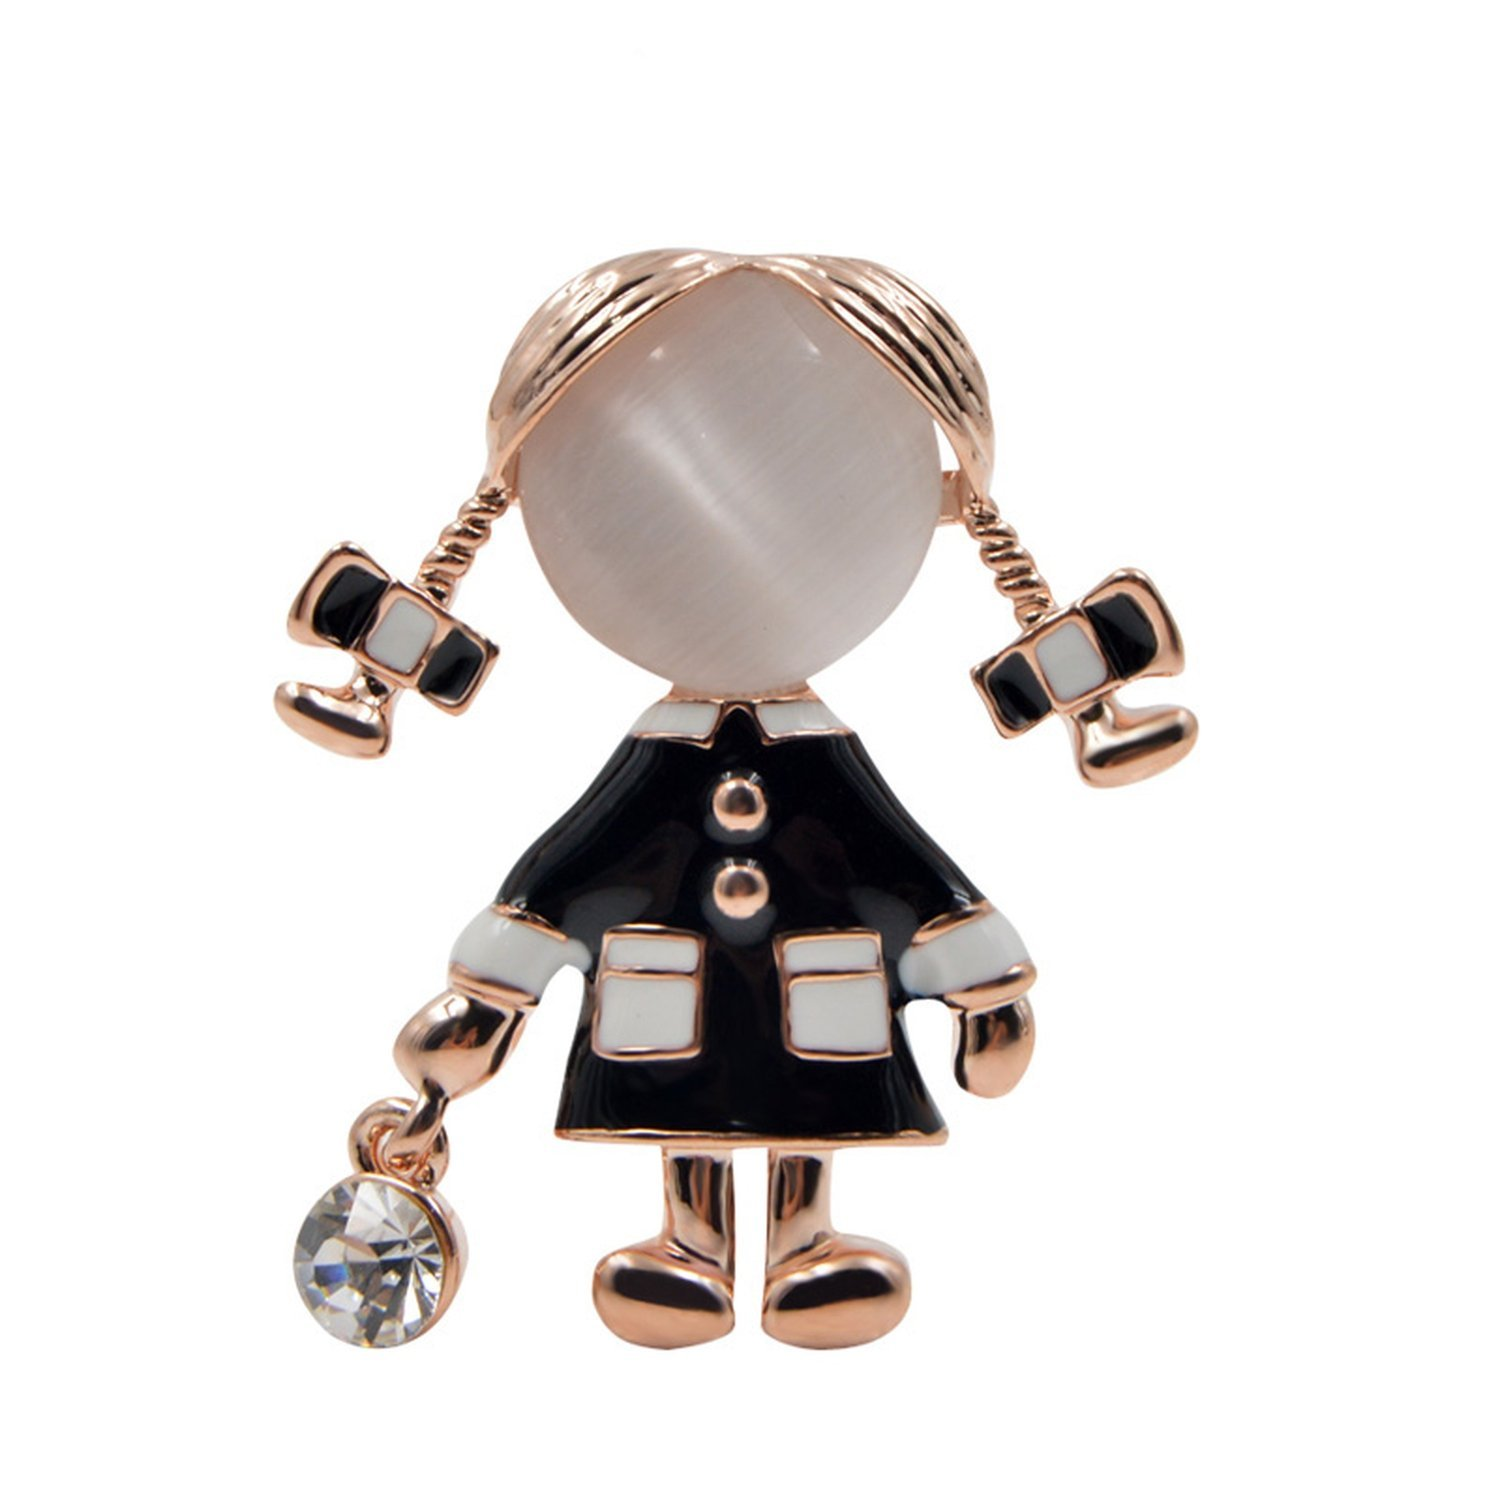 Small Cute Brooches Opal And Rhinestone Brooch Pin Silver Color Dress Coat Gift,Black